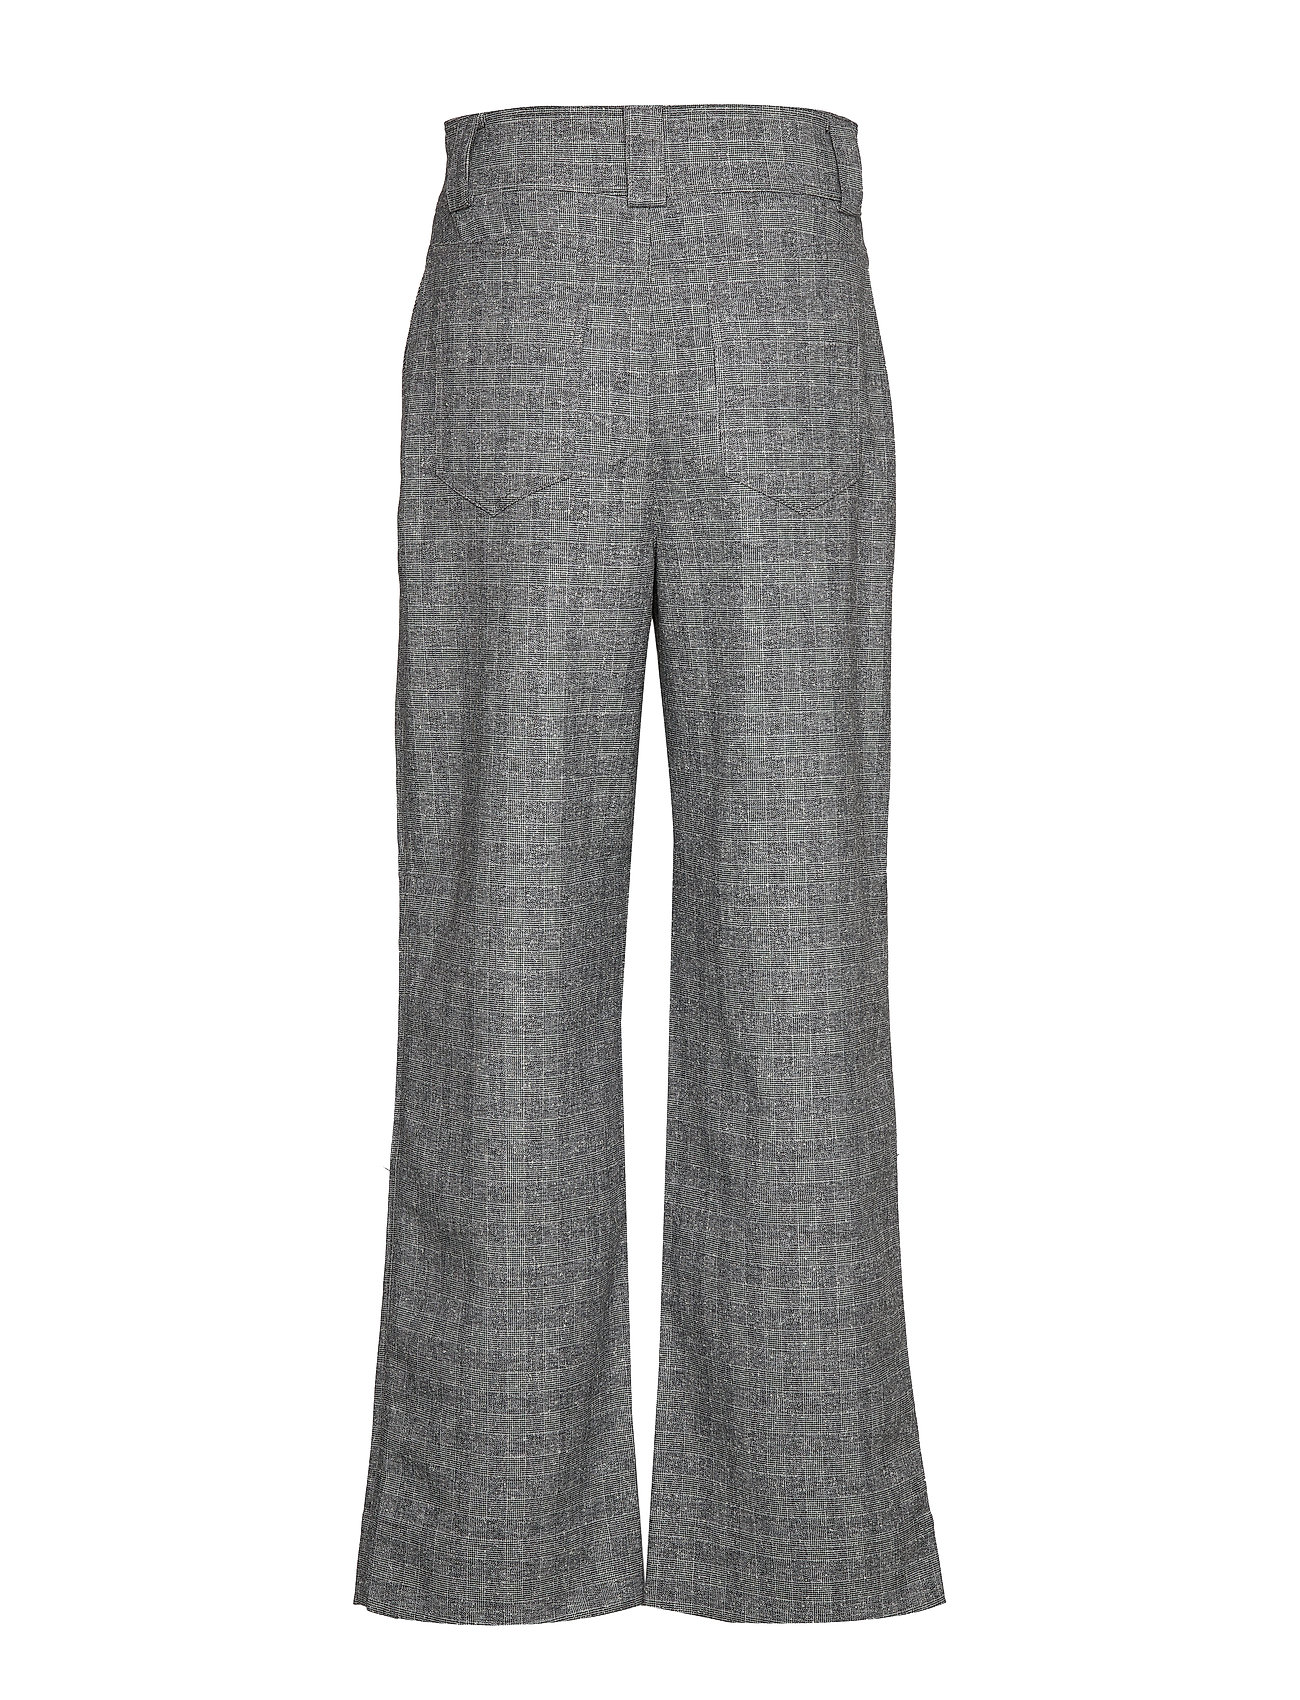 Ganni Light Suiting (Charcoal Grey), 899.50